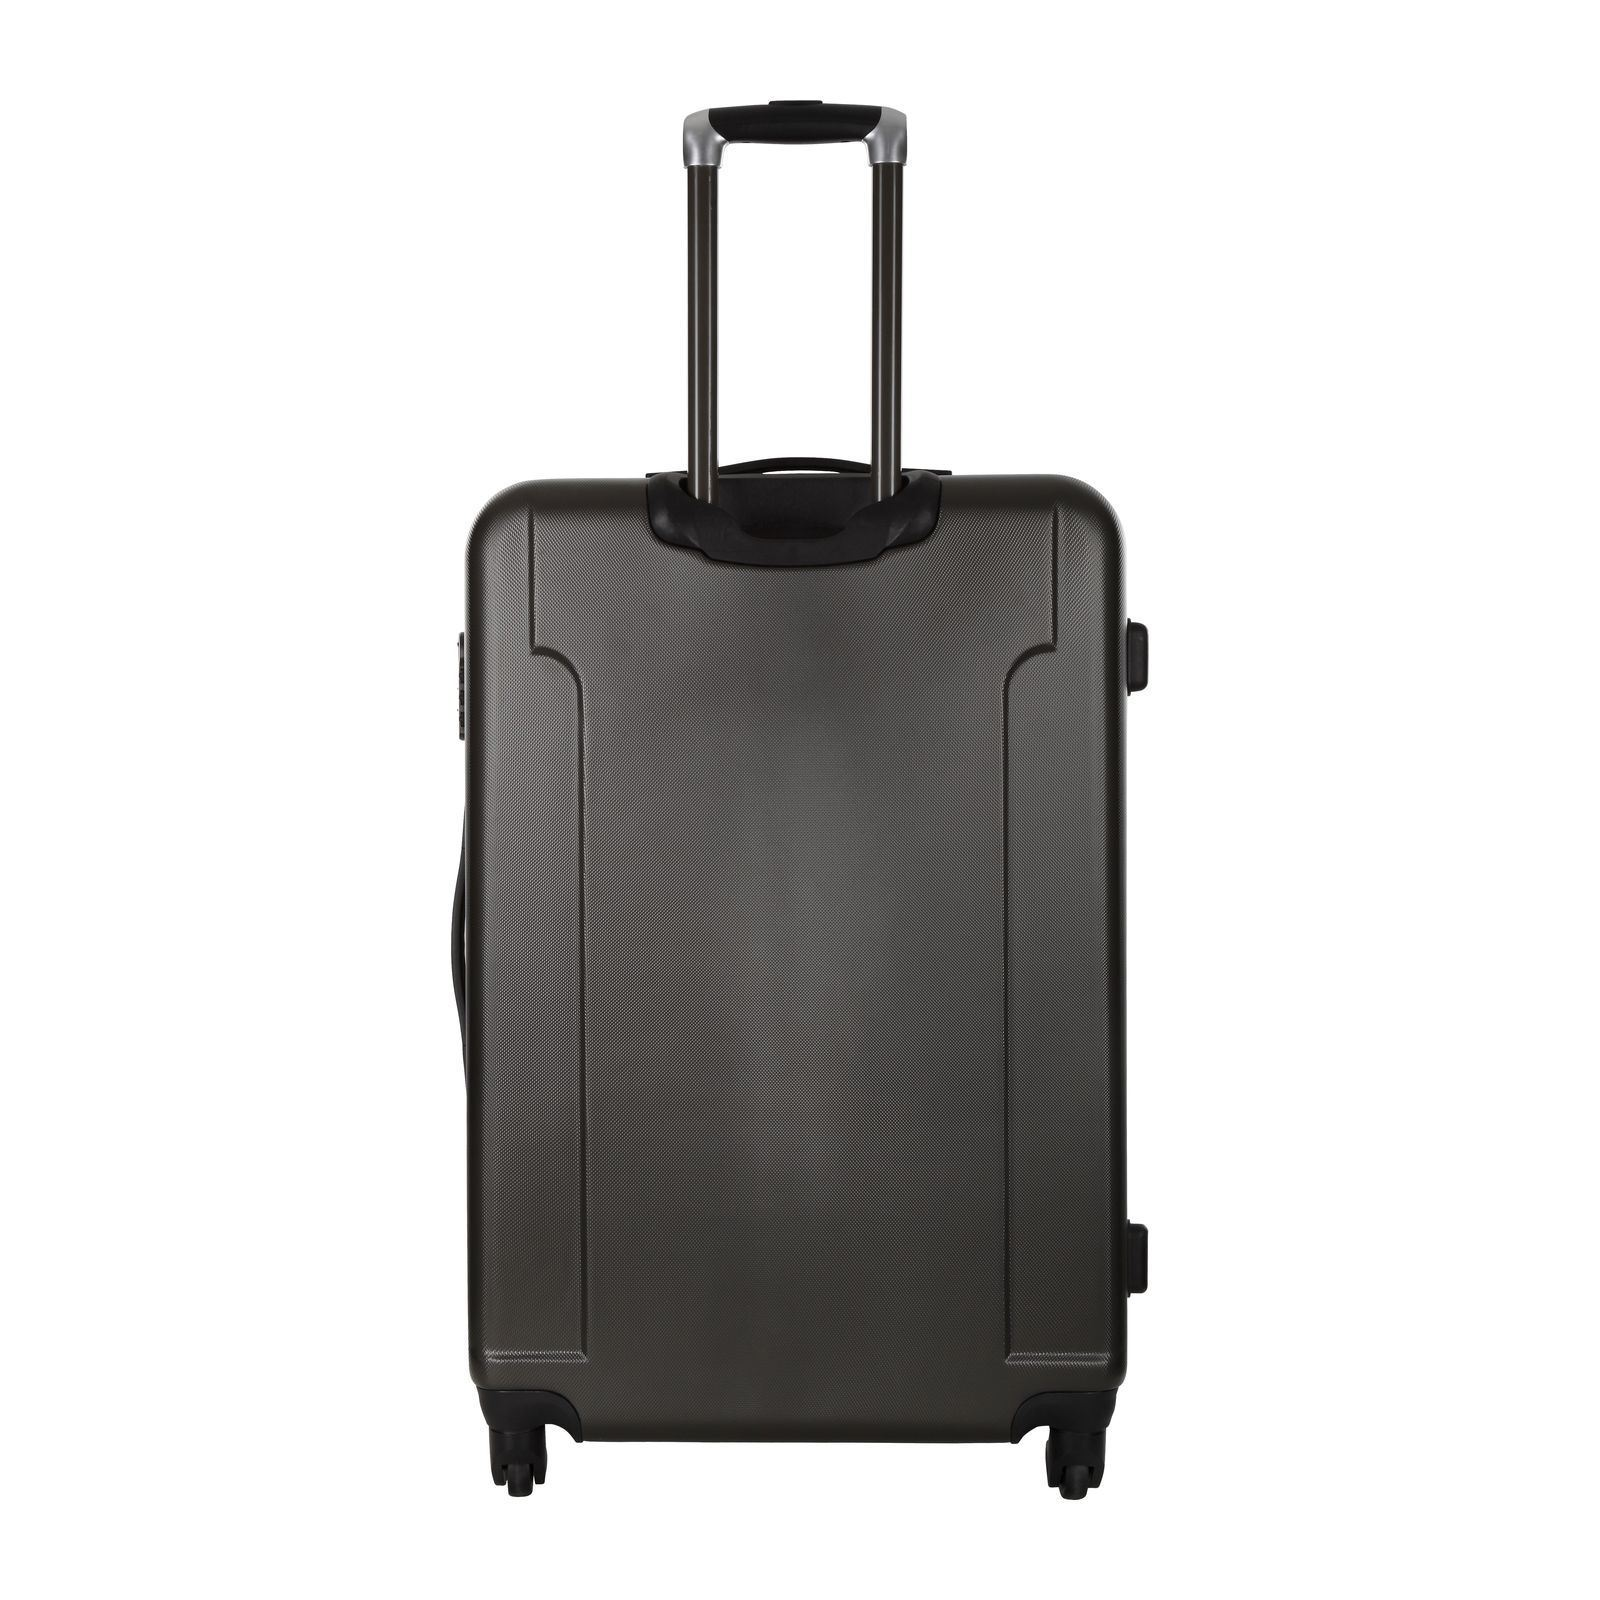 Rodier arenal valise 4 roues m gris brandalley for Rodier interieur